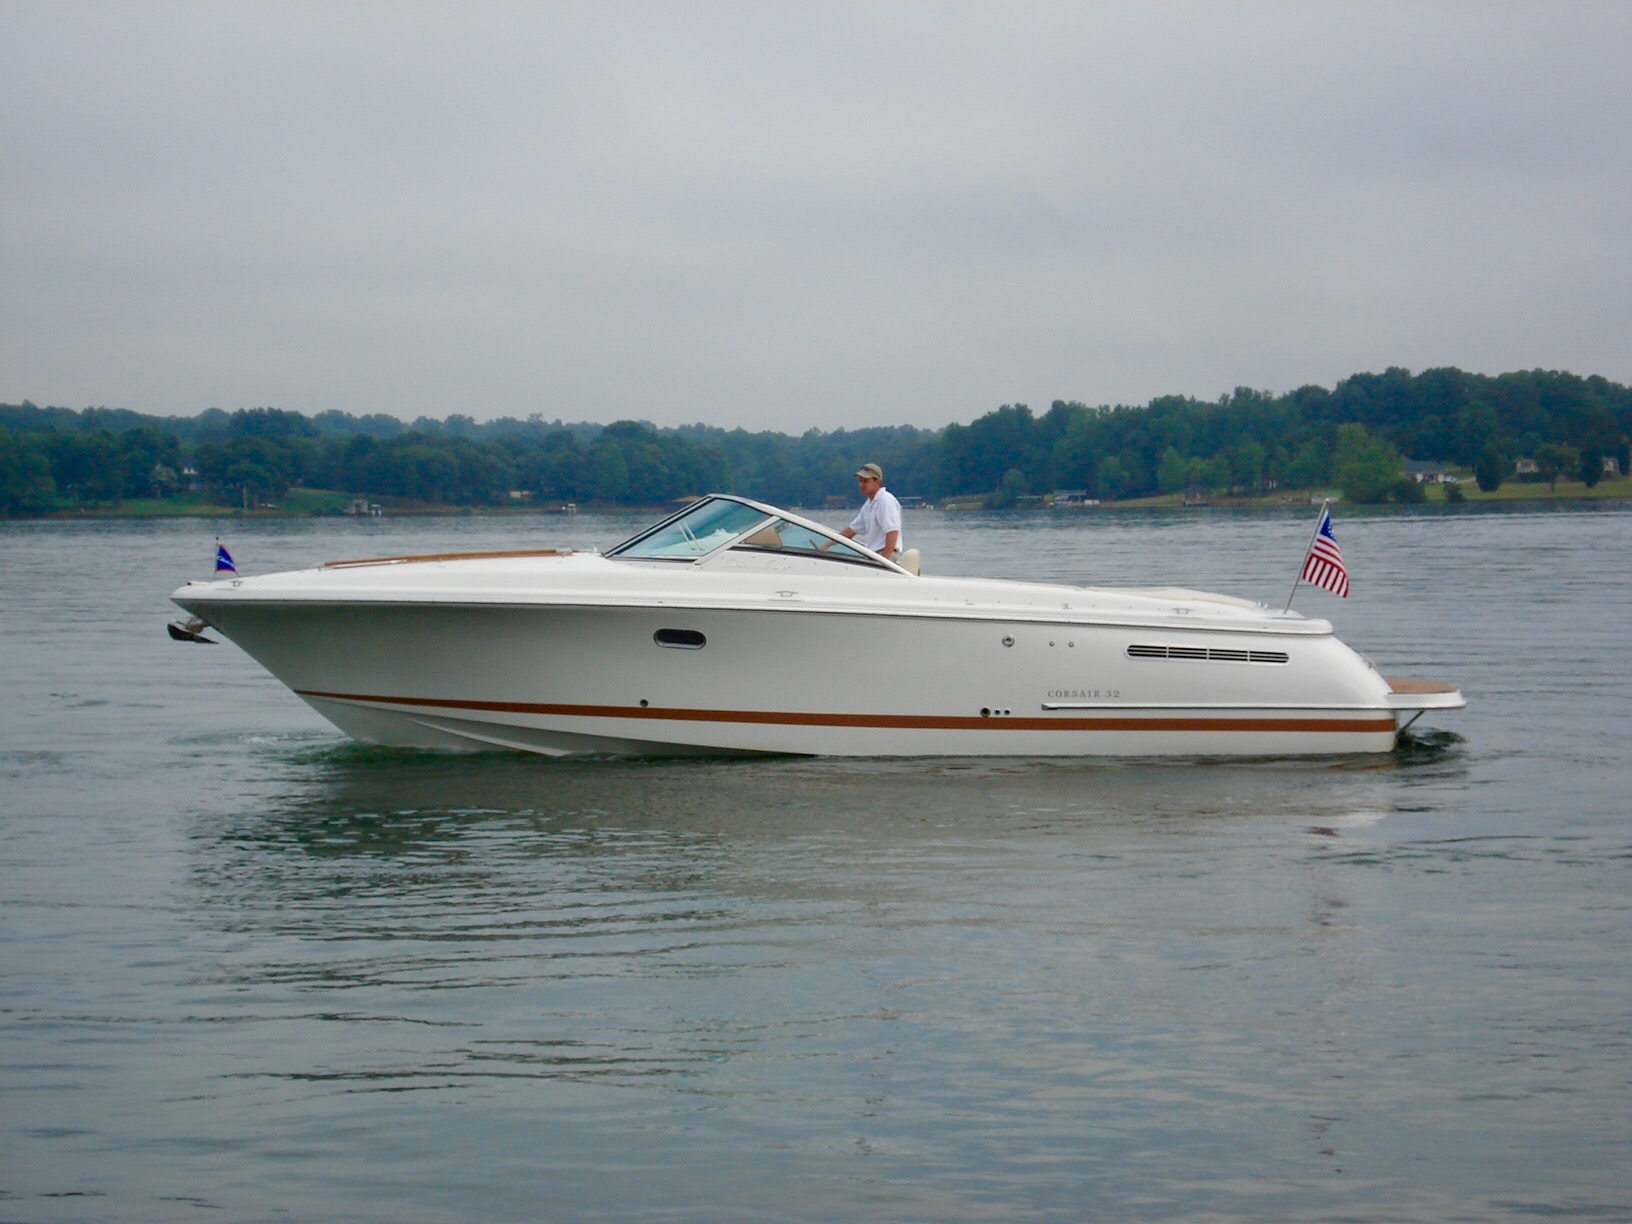 Chris-Craft Corsair 33